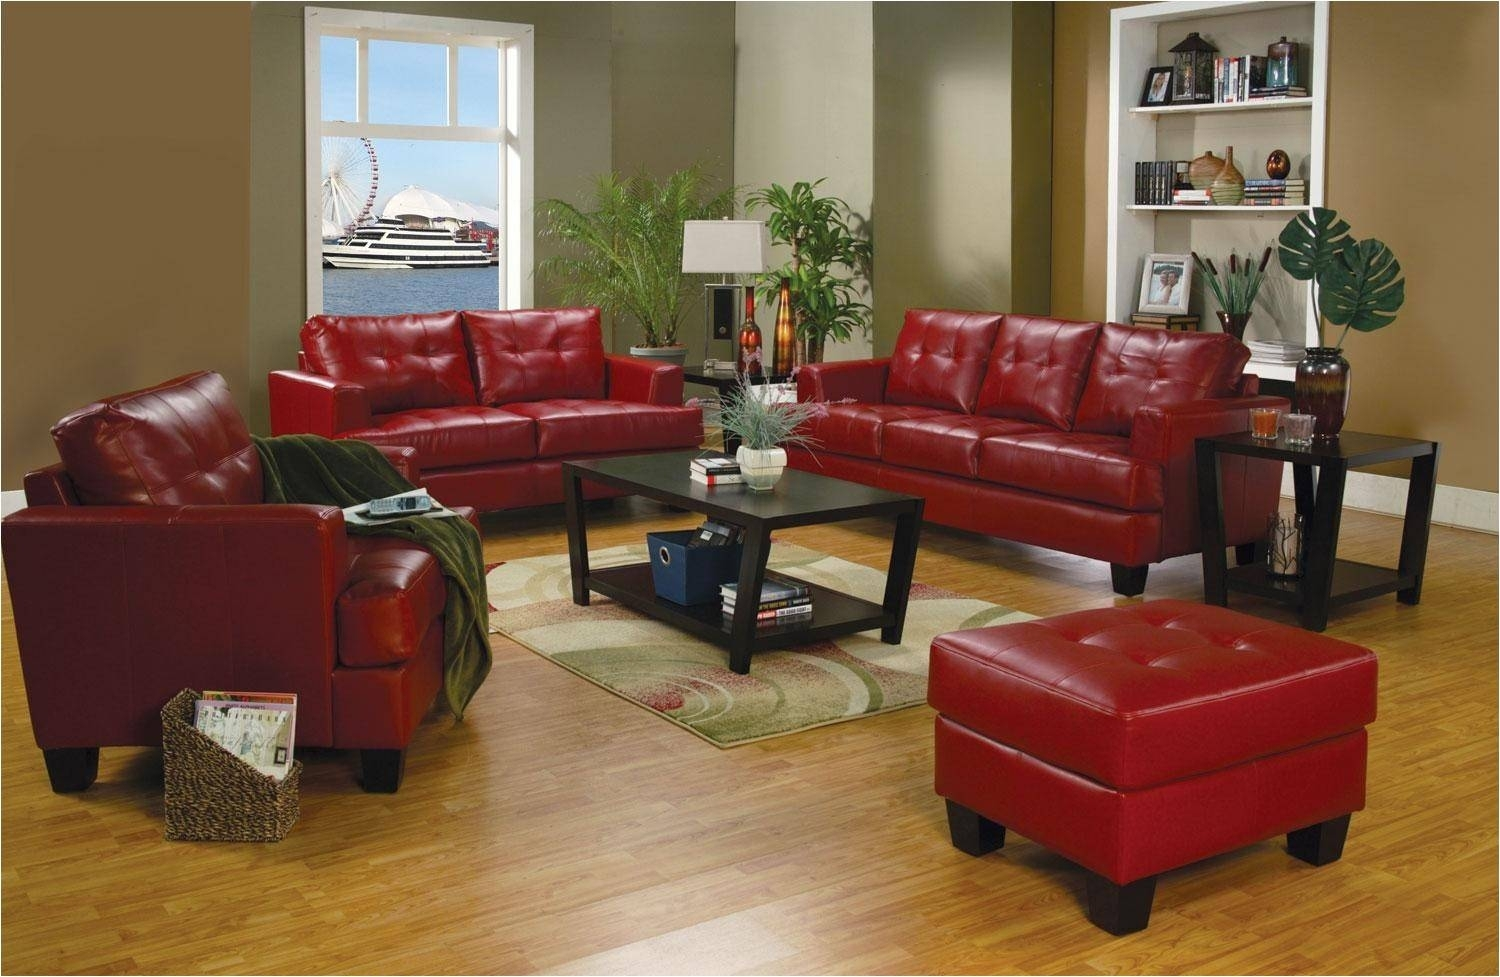 Burgundy Leather Couch And Loveseat Red Sectional Red Leather Living regarding Red Leather Couches and Loveseats (Image 3 of 15)